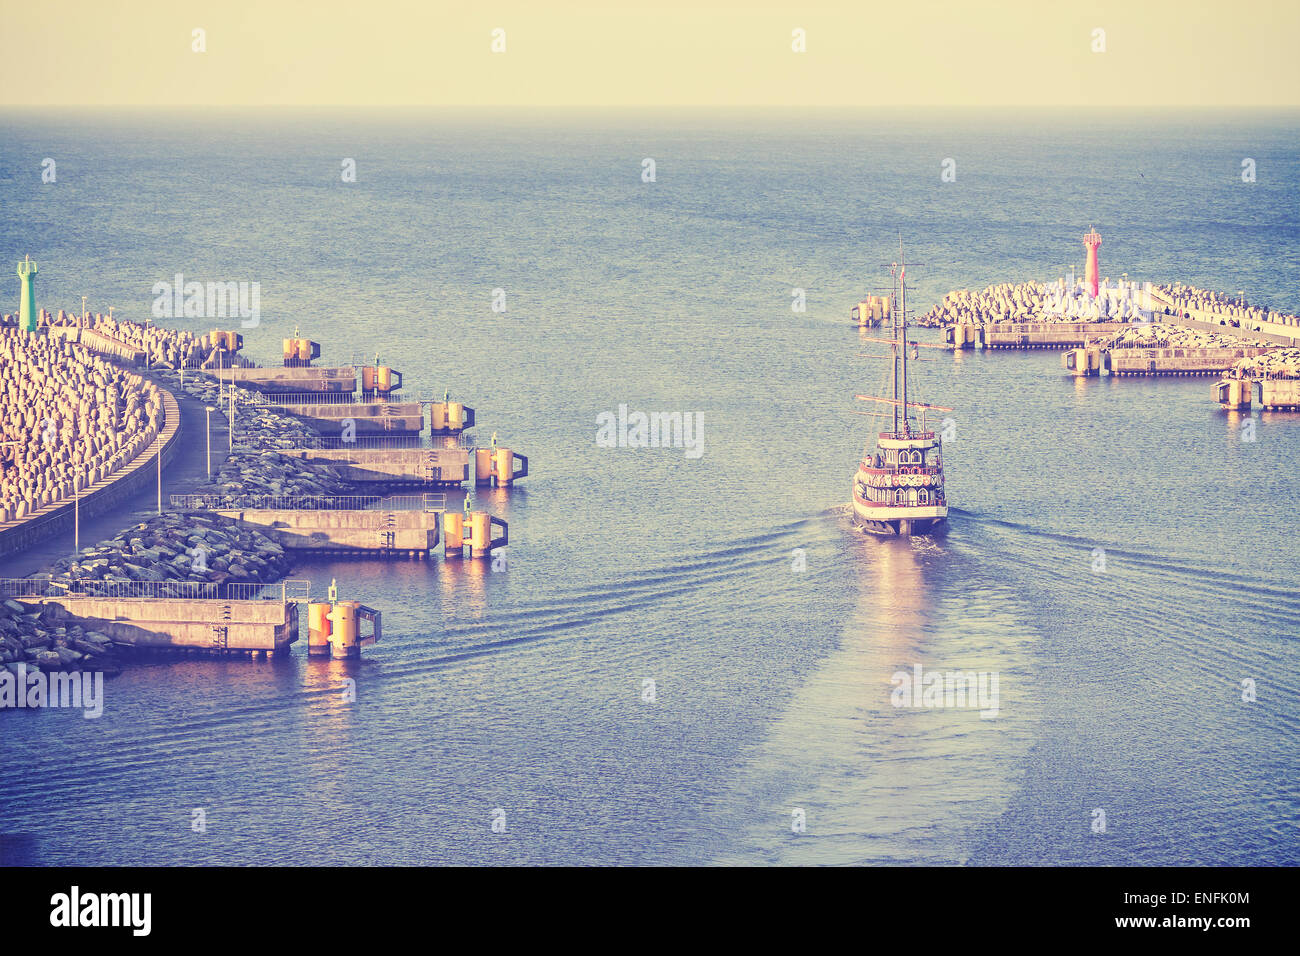 Retro vintage filtered picture of an old sailing ship leaving port in Kolobrzeg, Poland. - Stock Image